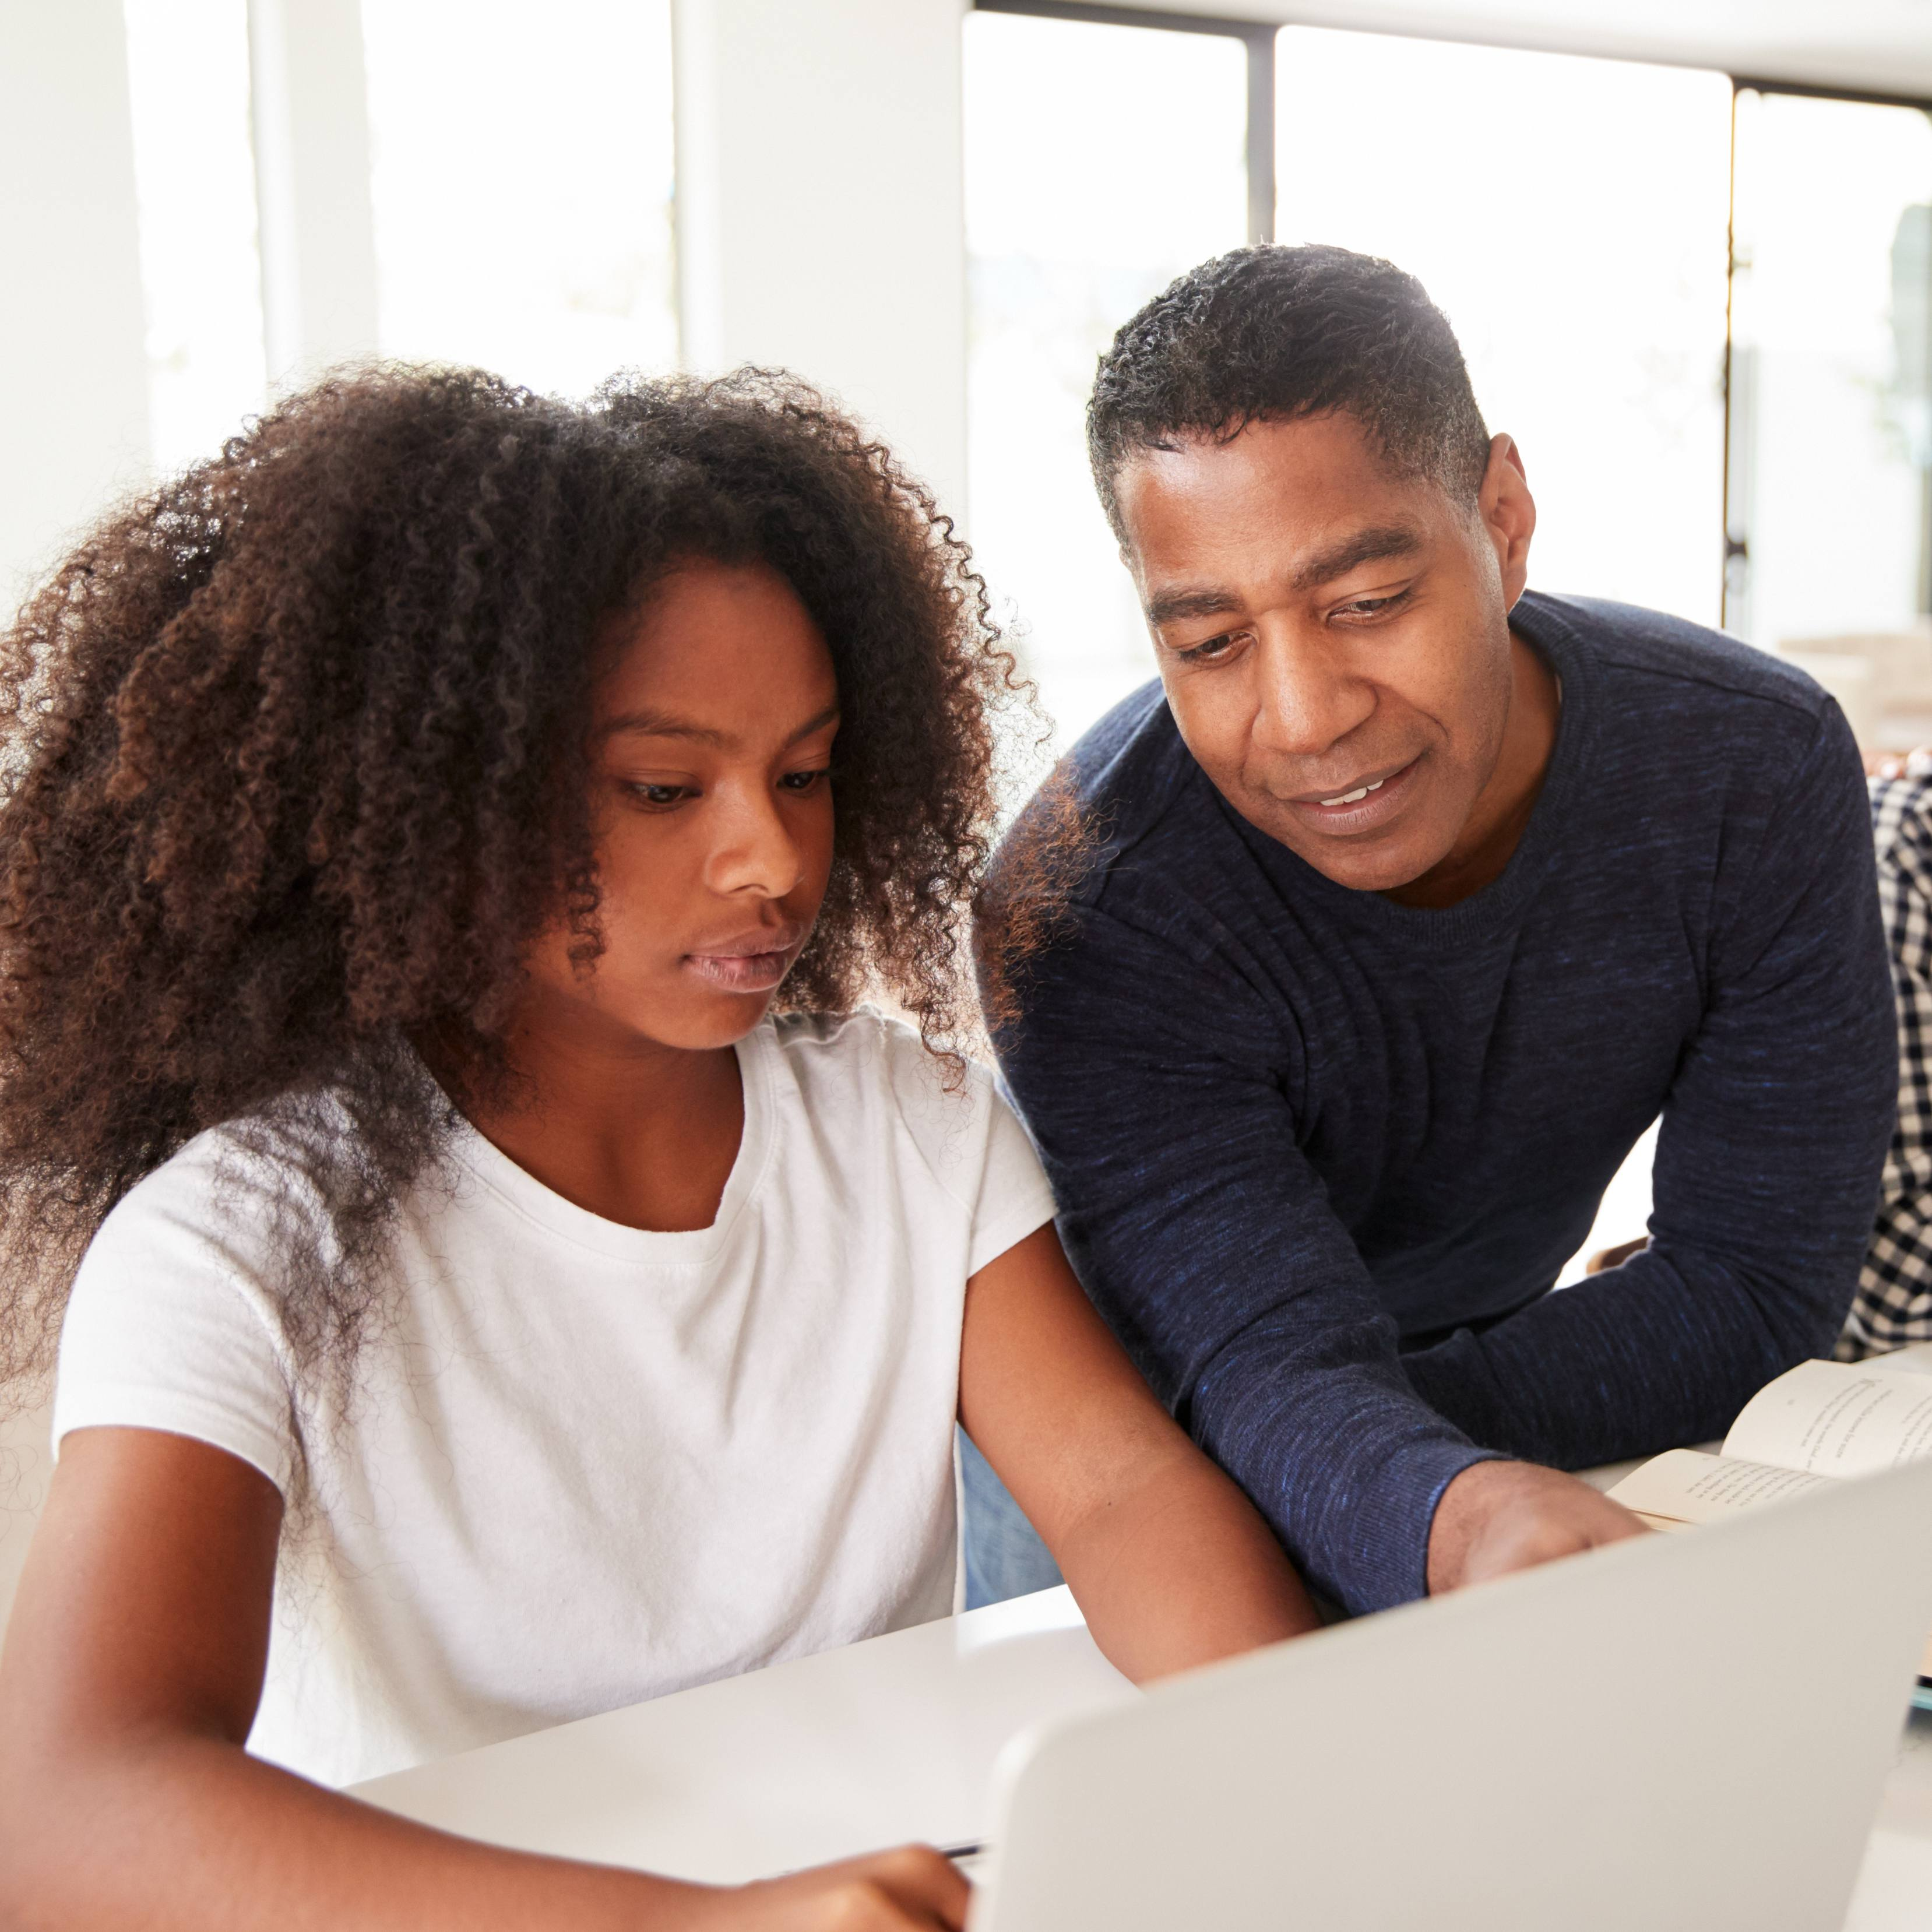 a Black teenage girls looking at a laptop computer with perhaps her father, a Black adult man, smiling and pointing to the screen to help her